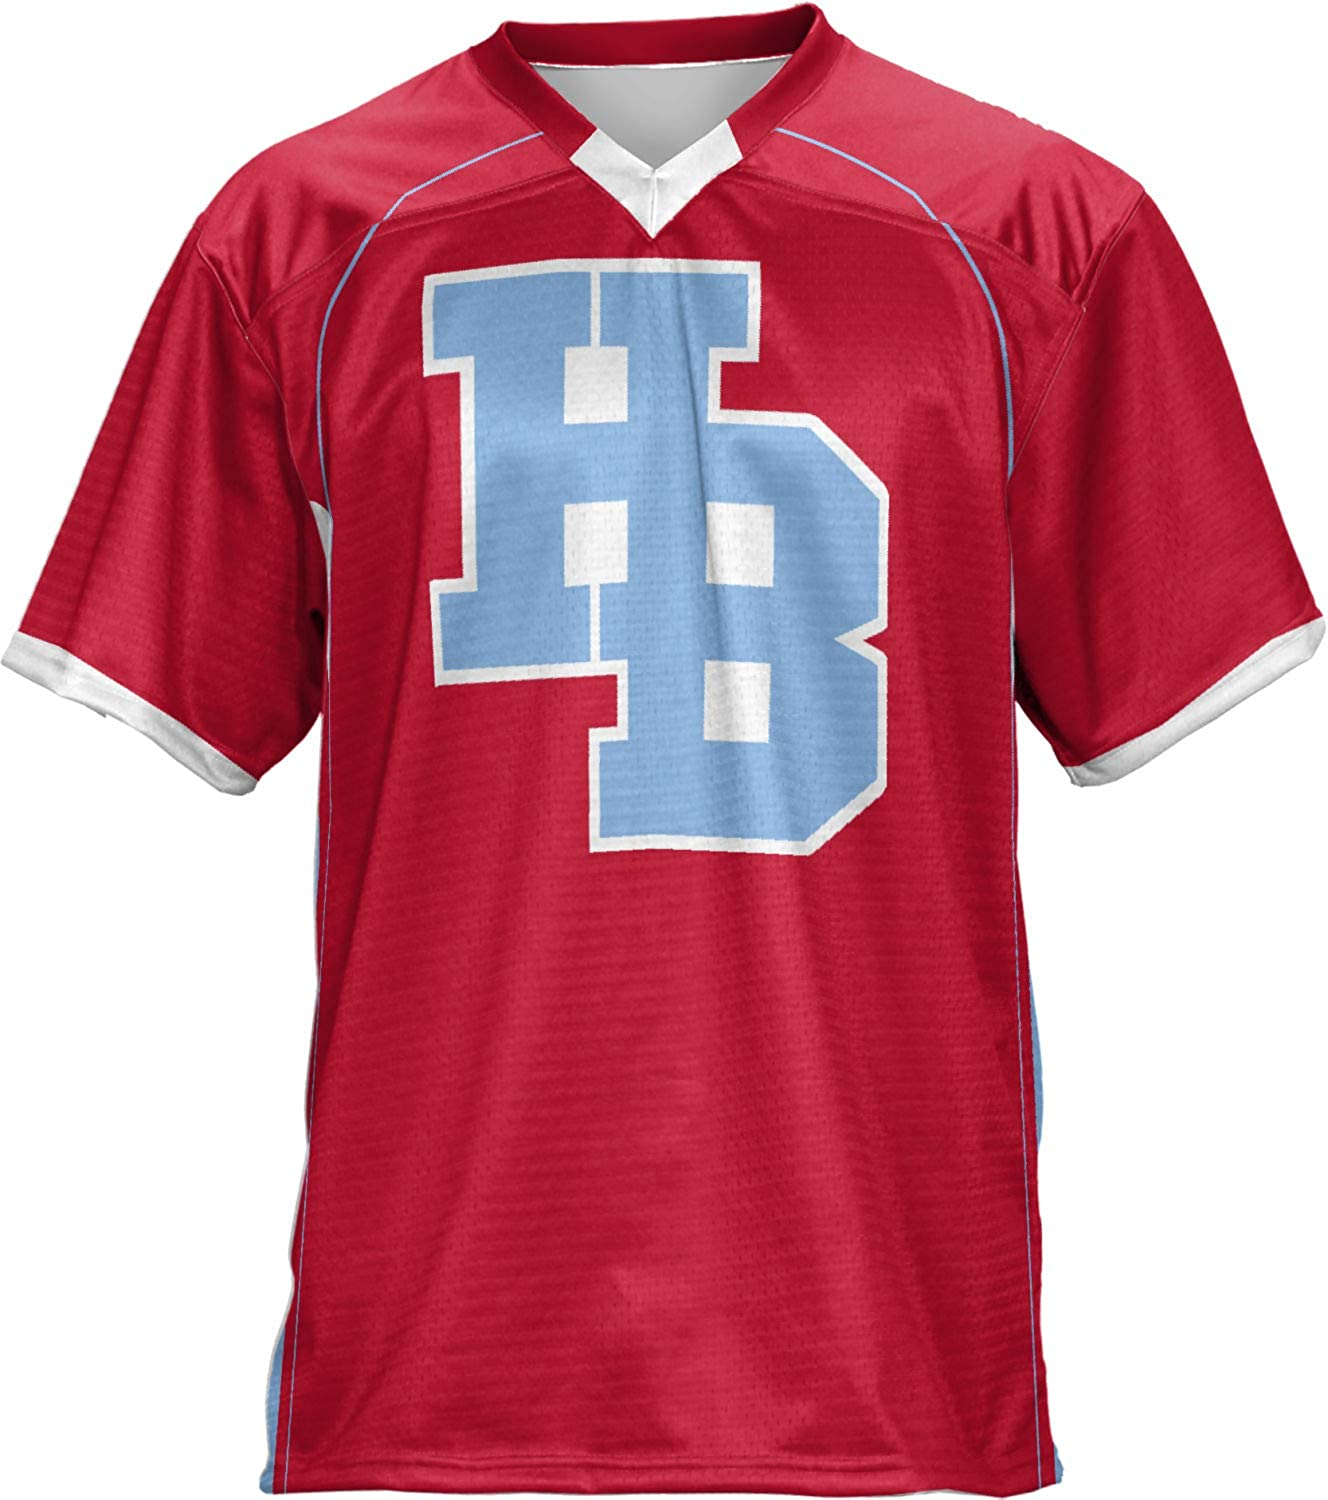 ProSphere Horseshoe Bend High School Jersey NEW before selling H Football Boys' No Fees free